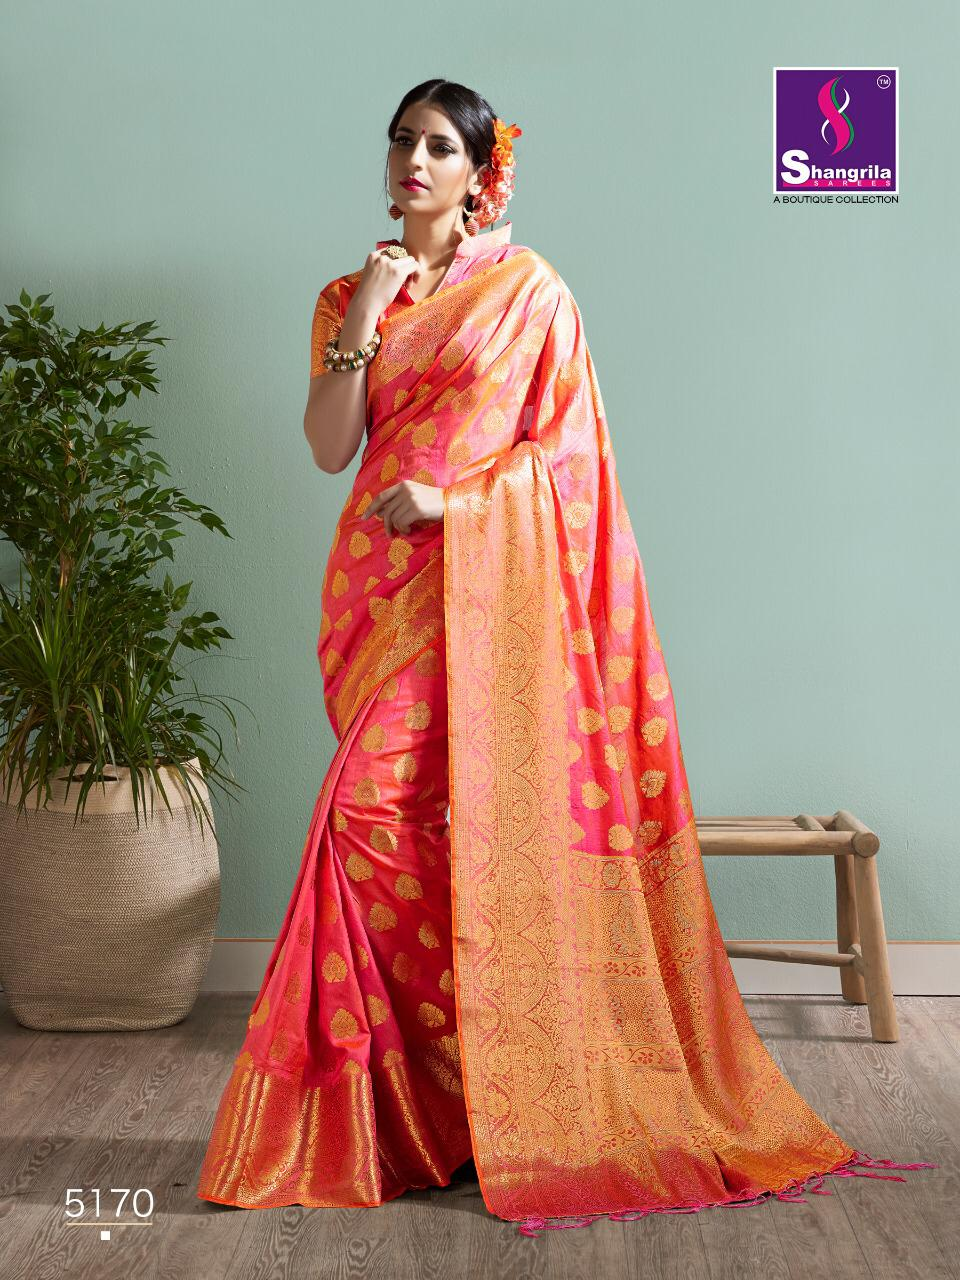 Shangrila Vasansi Silk 2 collection 3